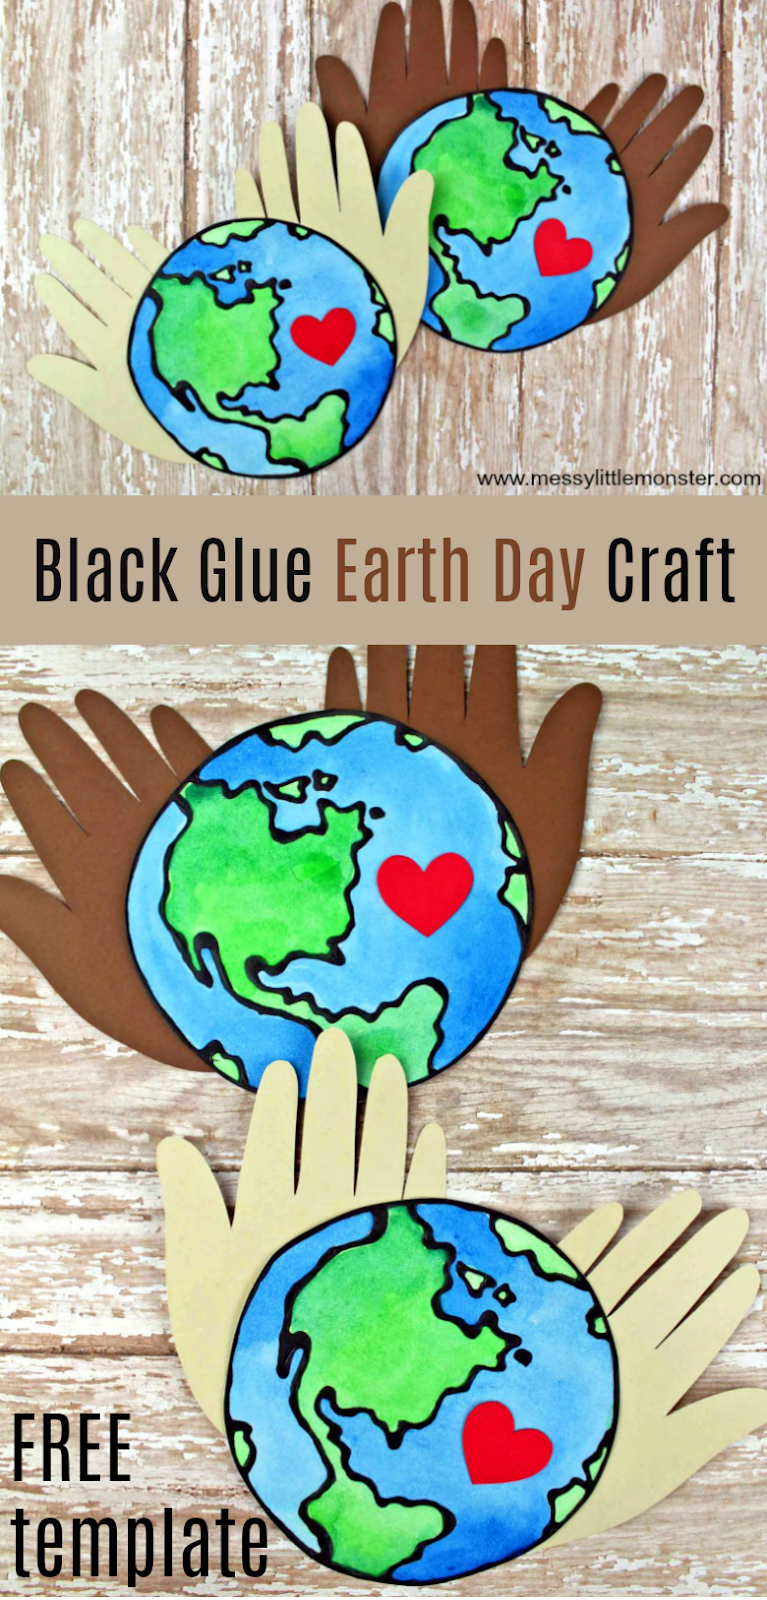 Black glue earth day craft - use the free earth printable template to make an easy planet earth craft for kids.